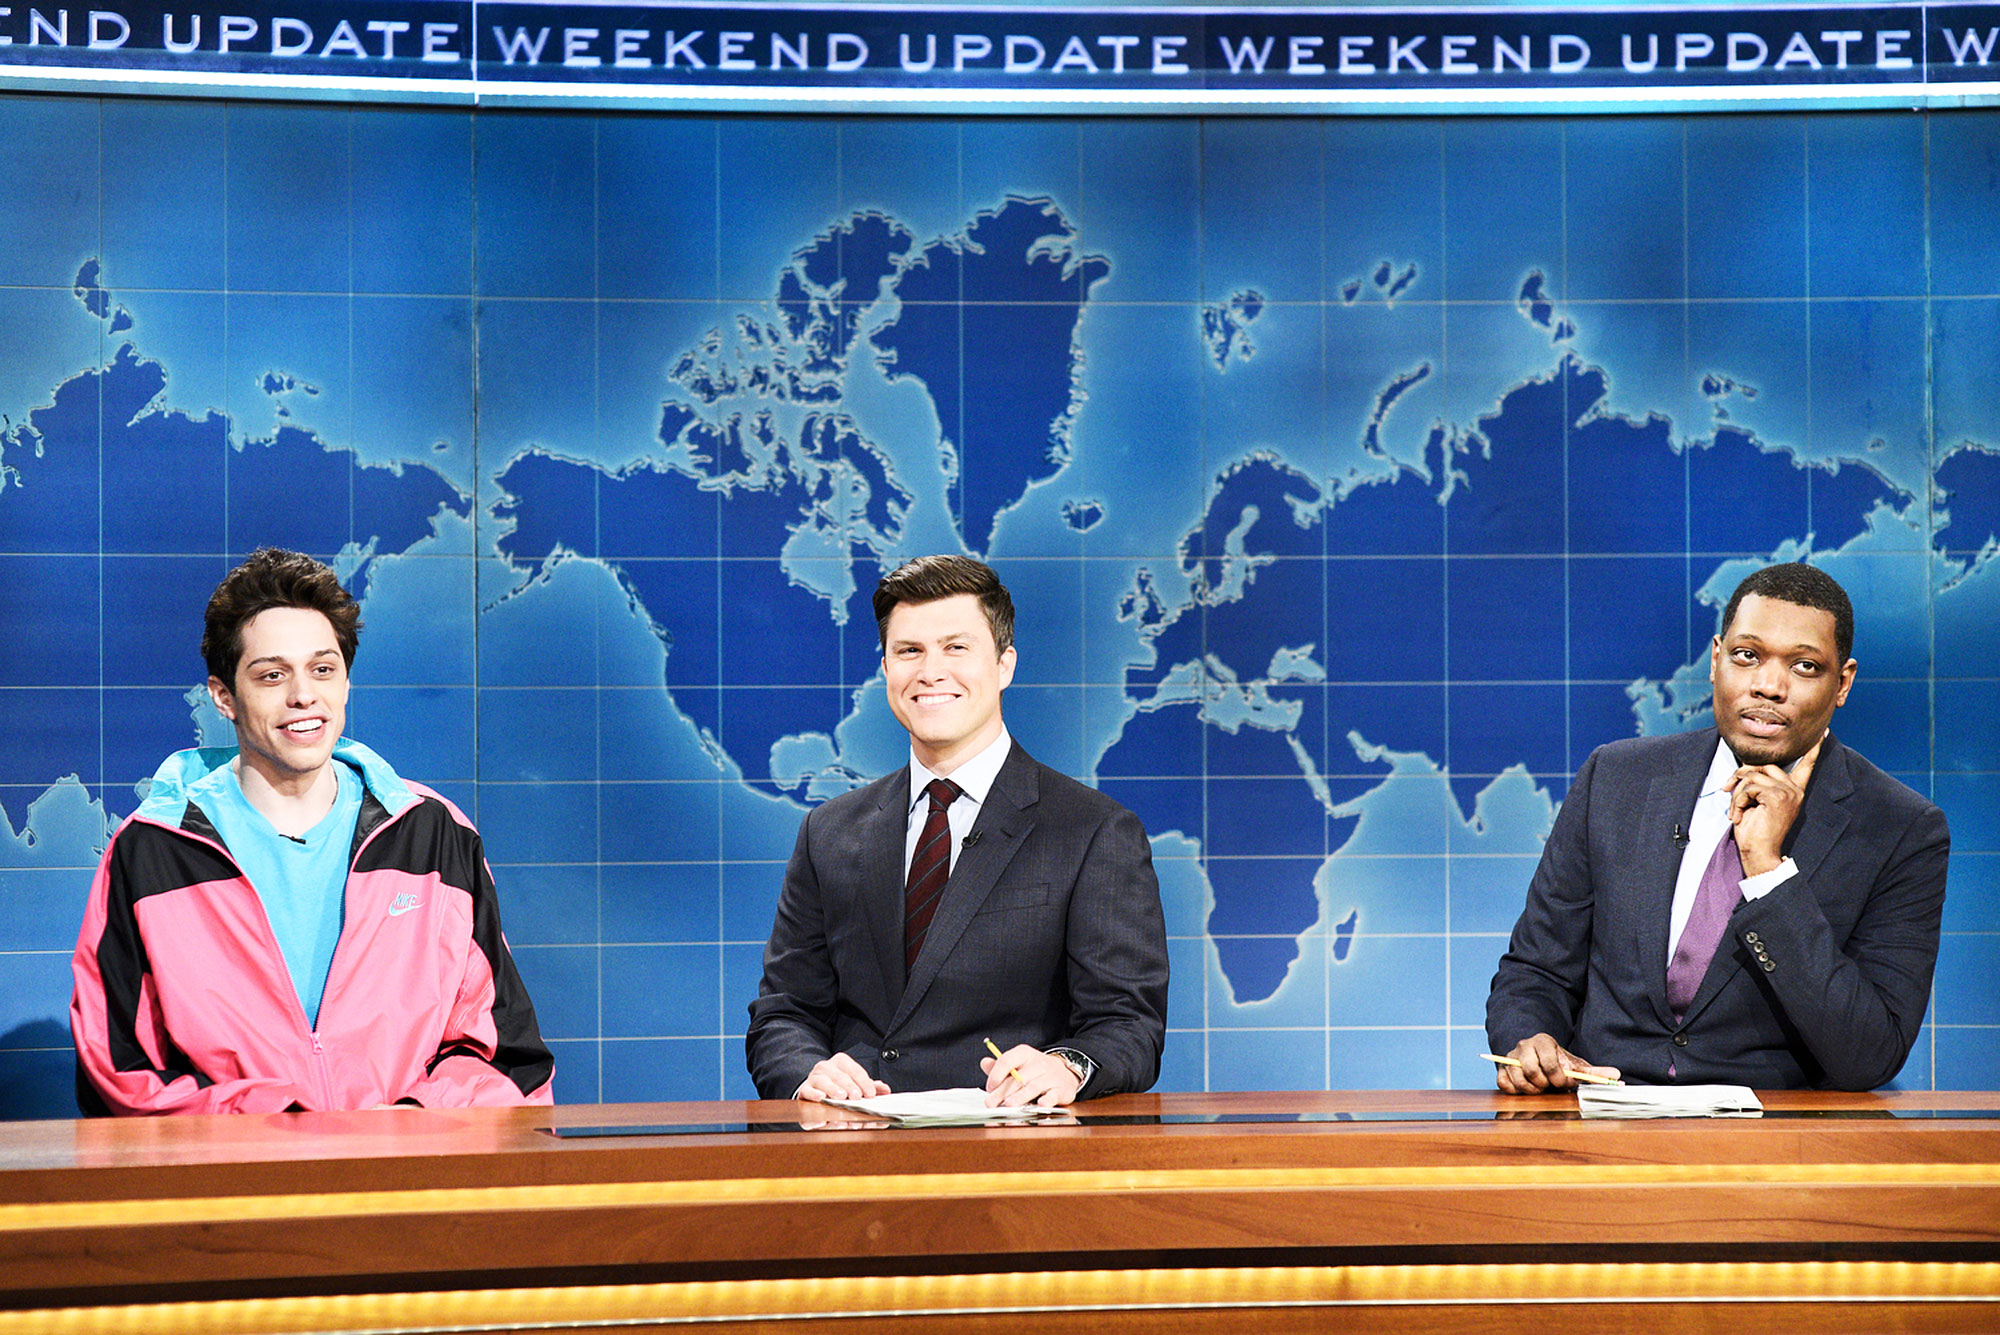 Is Pete Davidson Leaving Saturday Night Live Pete Davidson Colin Jost and Michael Che on Weekend Update on Saturday Night Live